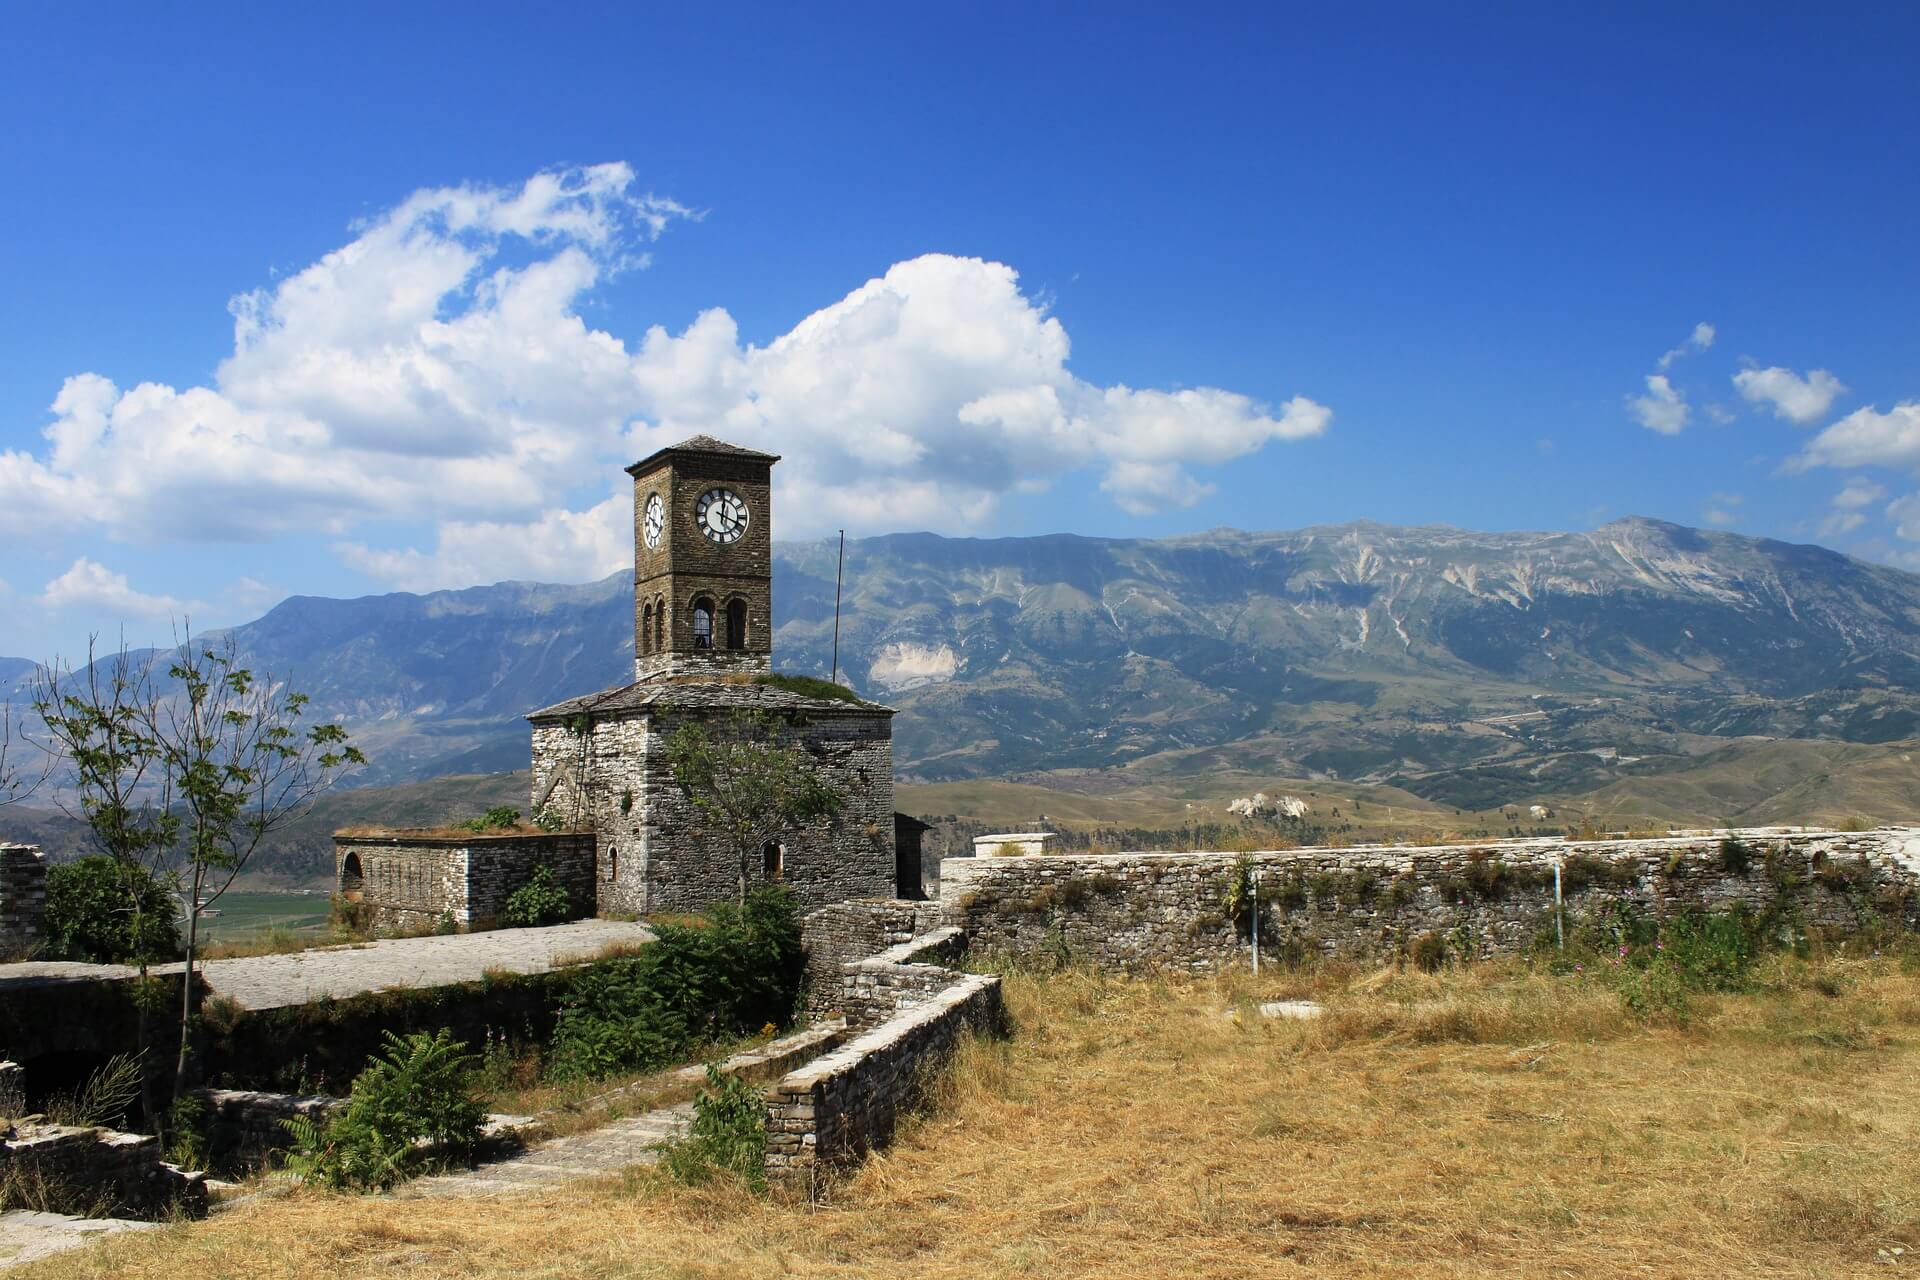 Mountains and old ruins in Albania - my top pick for where Americans can travel now